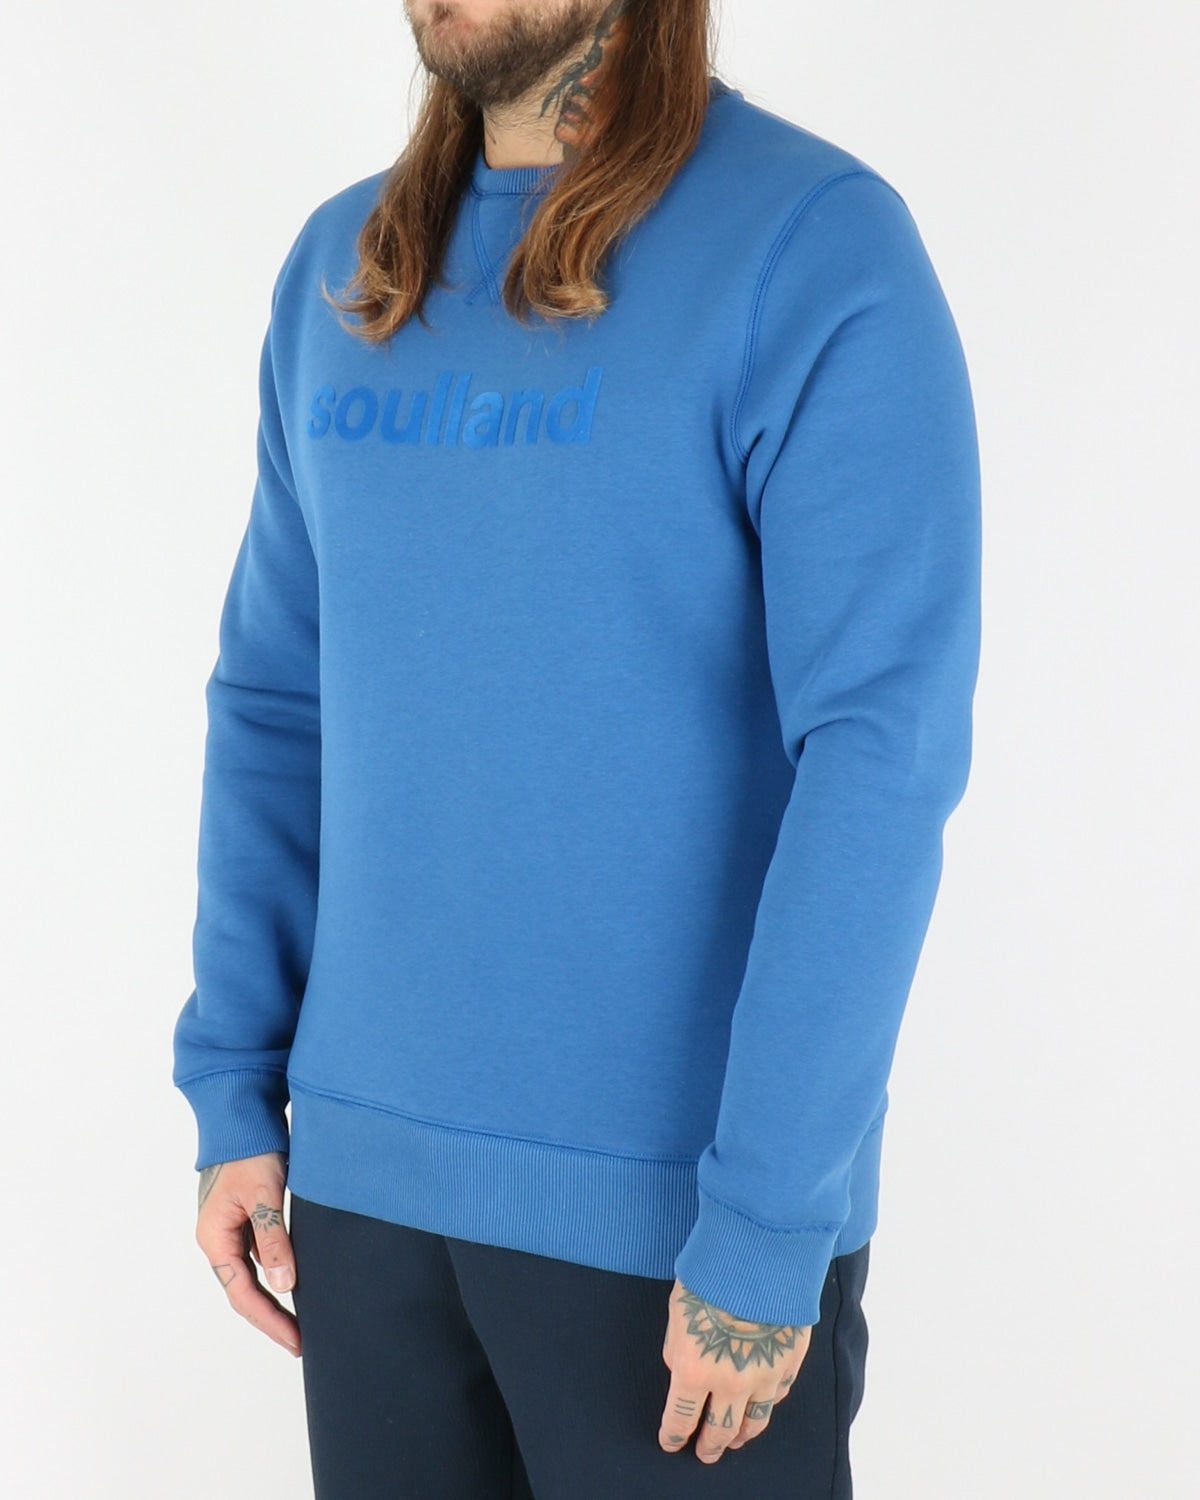 soulland_willie sweatshirt_blue_2_3